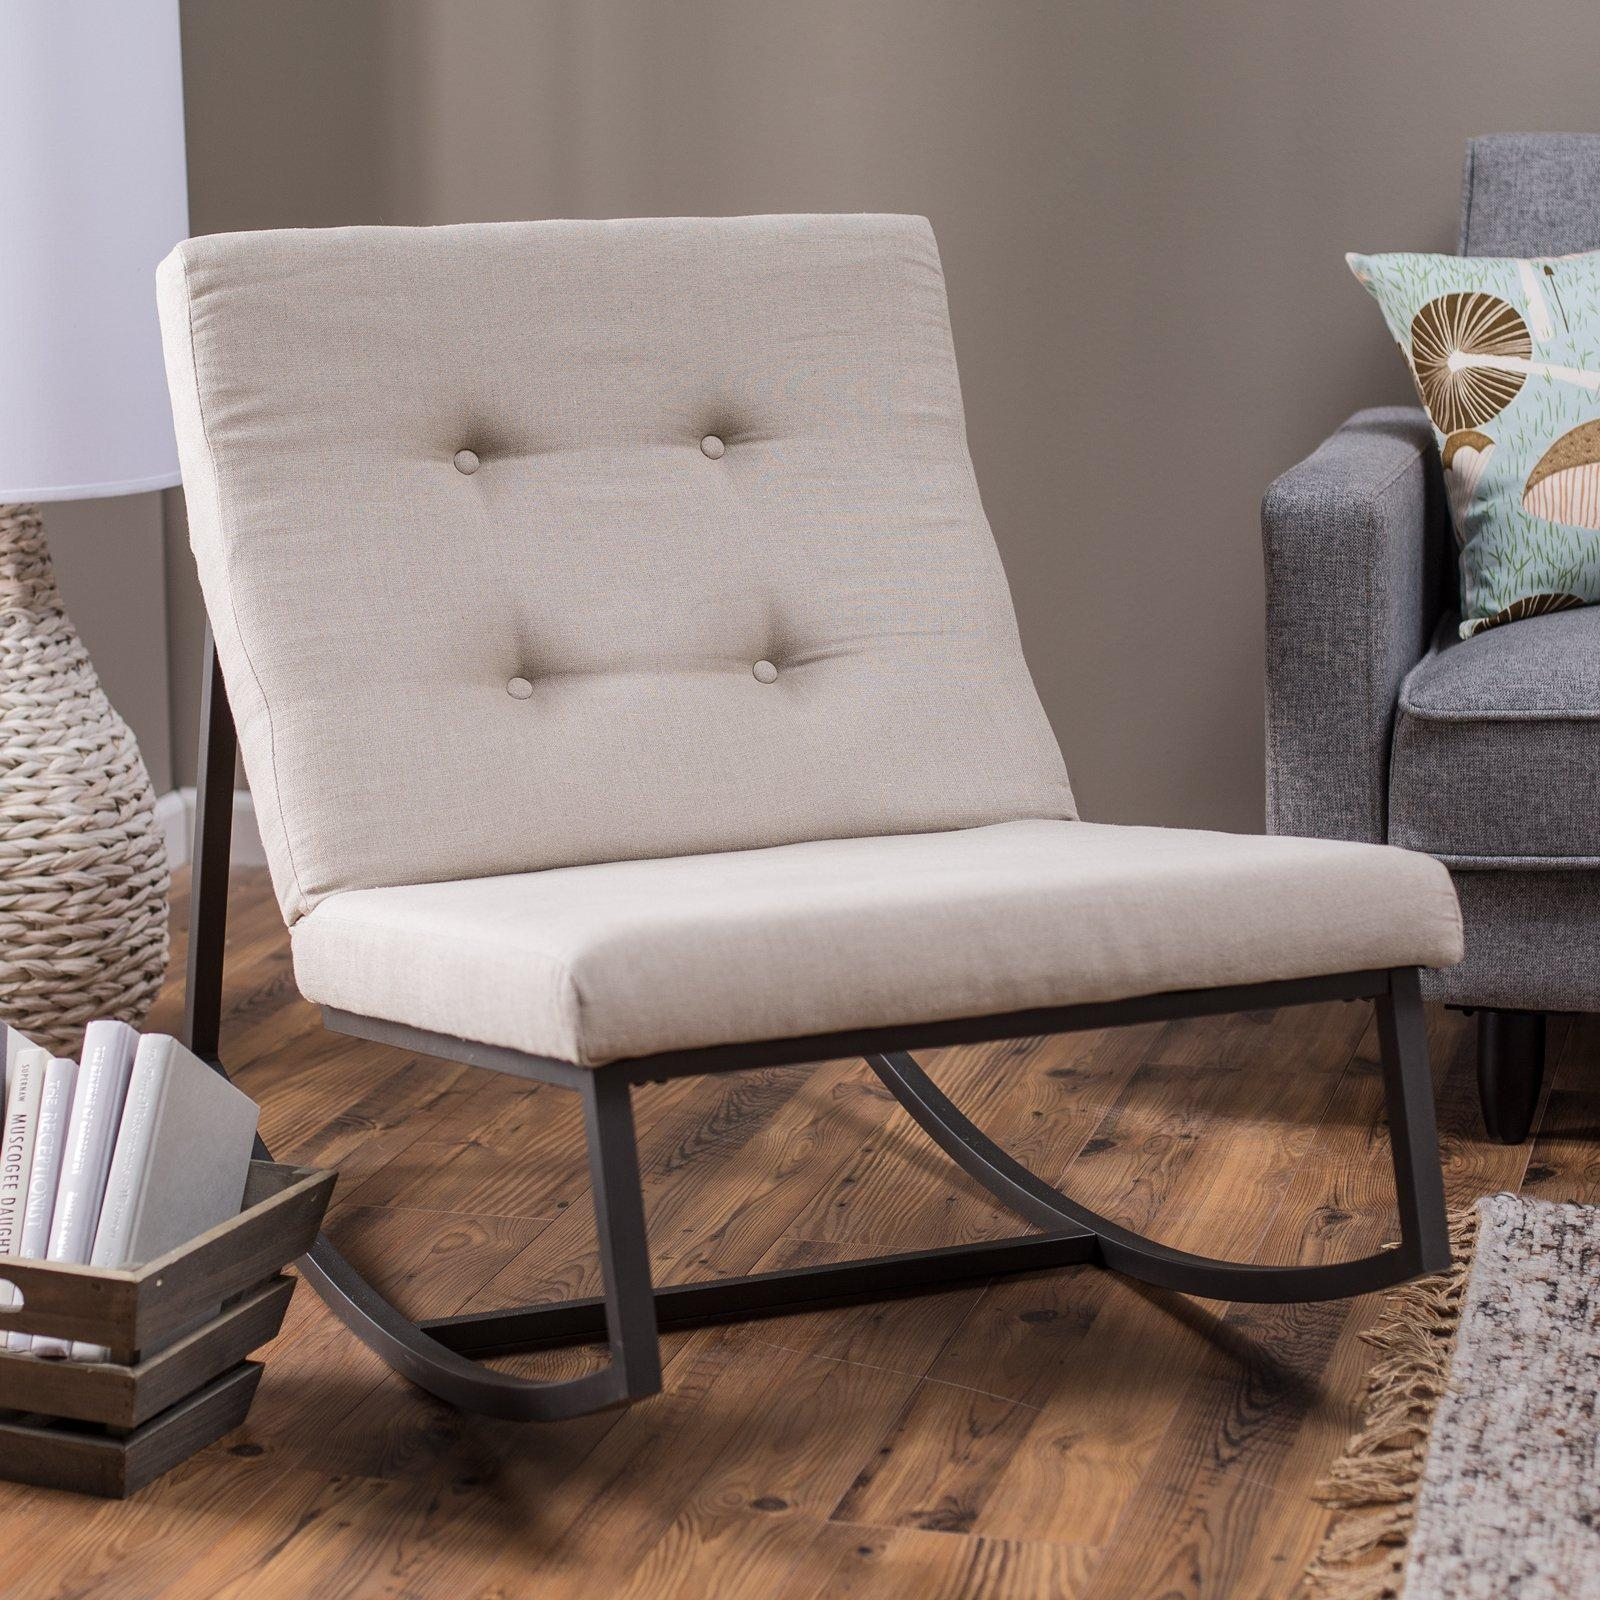 Living Room : Wonderful Rocking Chair Decorating Ideas With Black Regarding Rocking Sofa Chairs (Image 9 of 20)